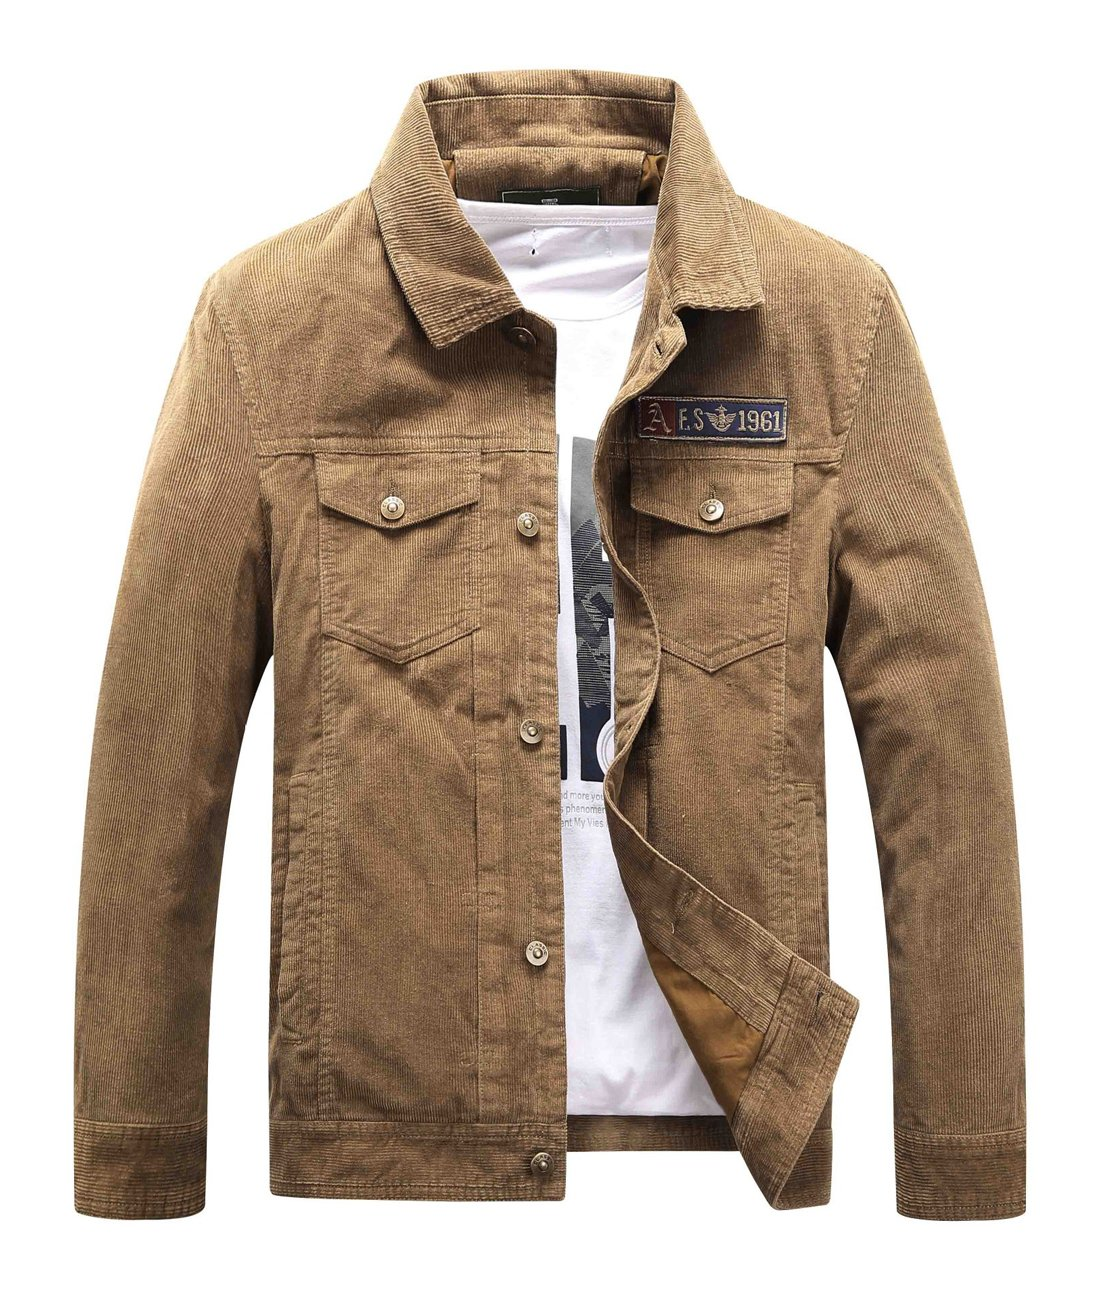 Chartou Men's Vintage Button-Front Slim Fit Corduroy Denim Jacket (Large, Khaki) by Chartou